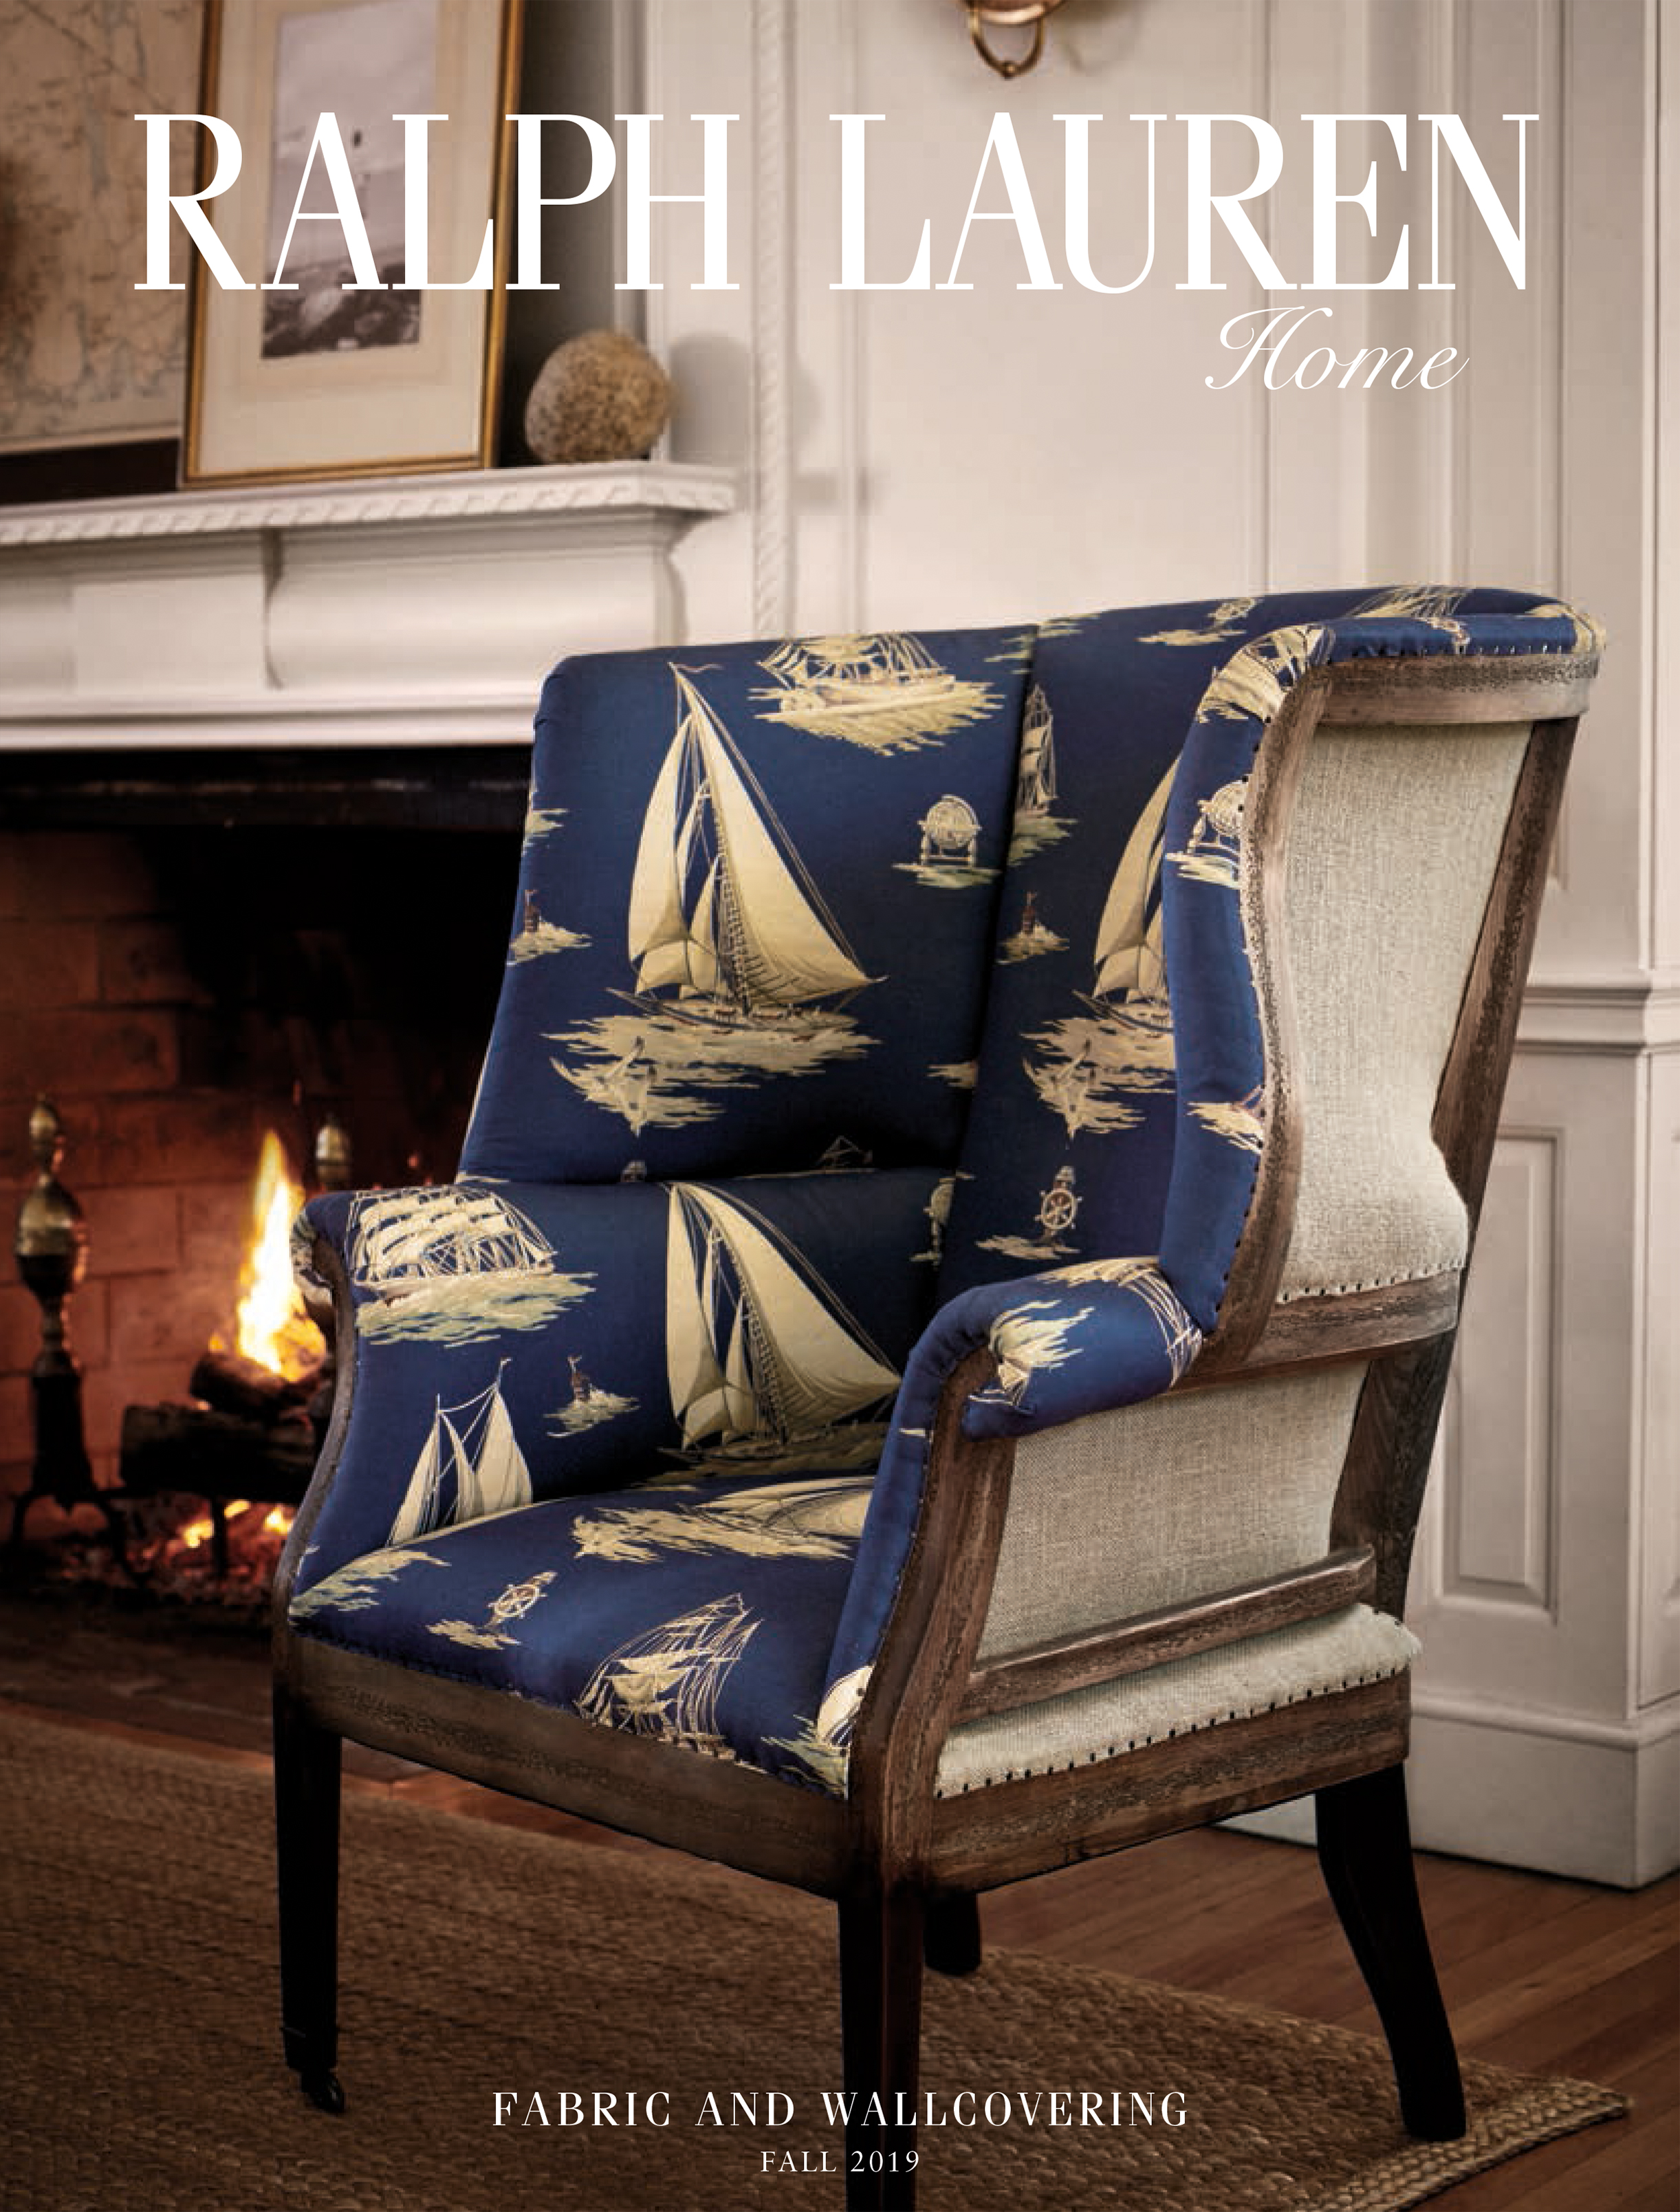 RALPH LAUREN FABRIC & WALLPAPER AUTUMN/WINTER 2019